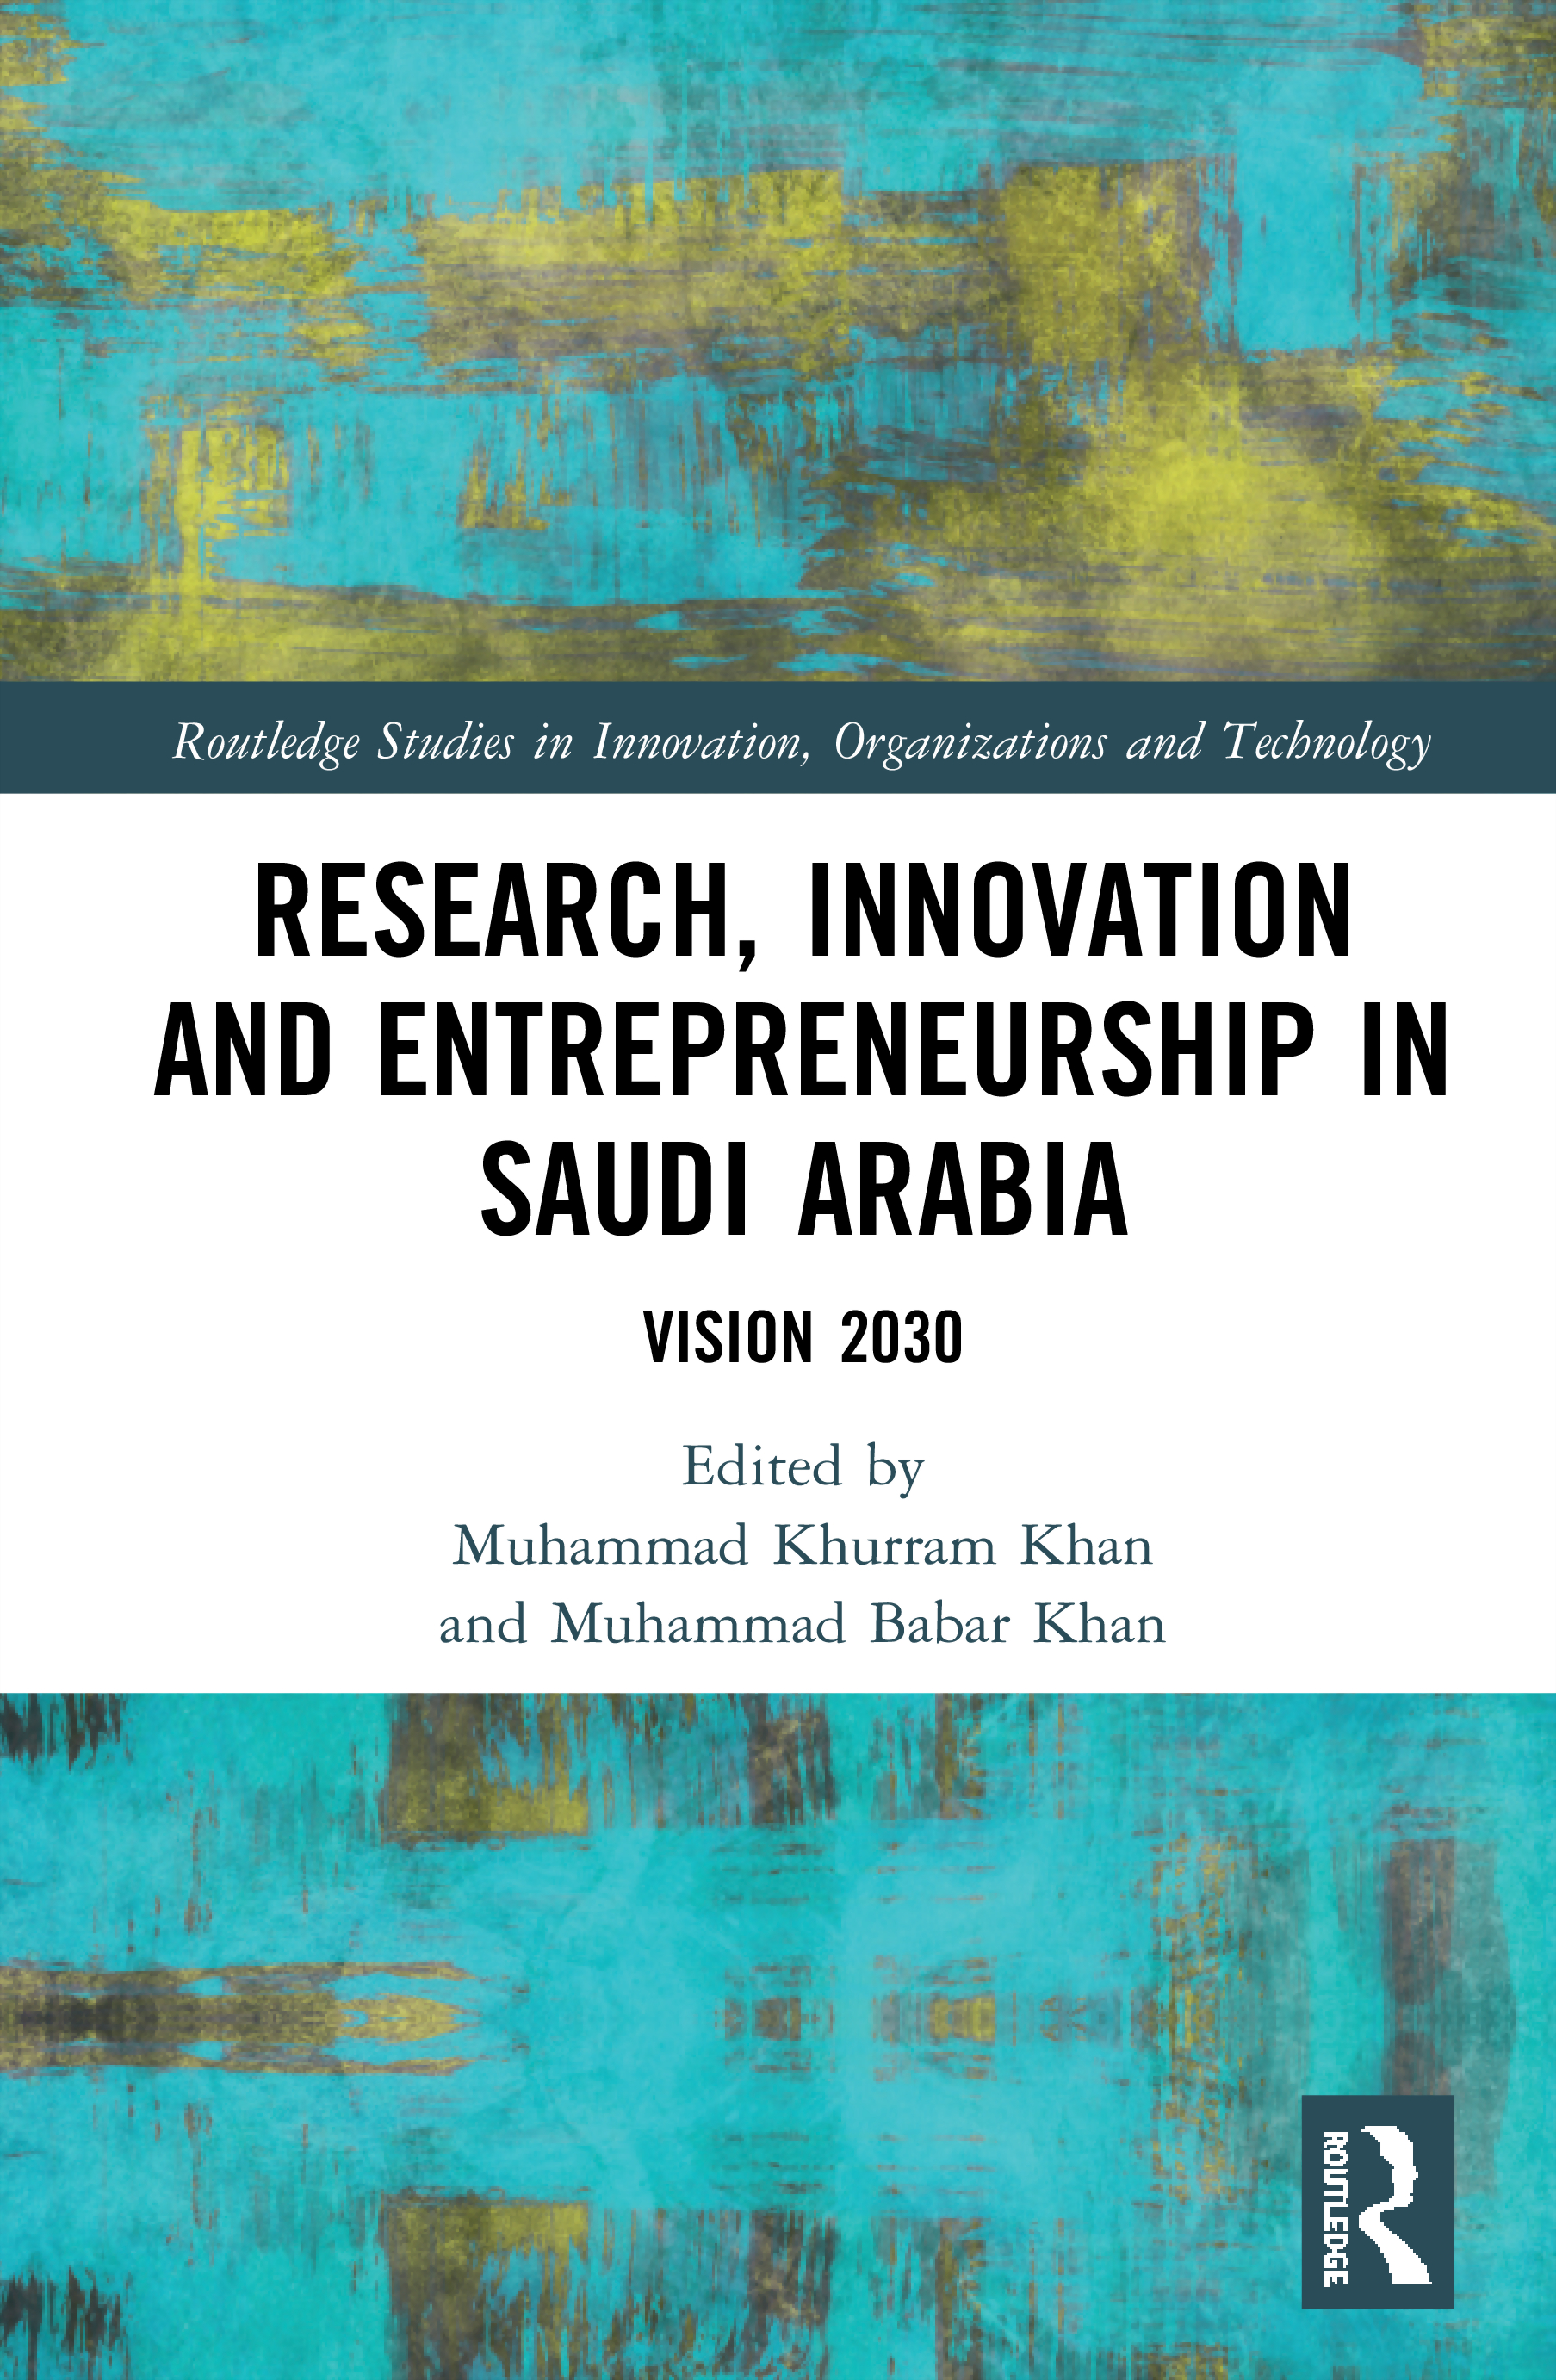 Research, Innovation and Entrepreneurship in Saudi Arabia: Vision 2030 book cover